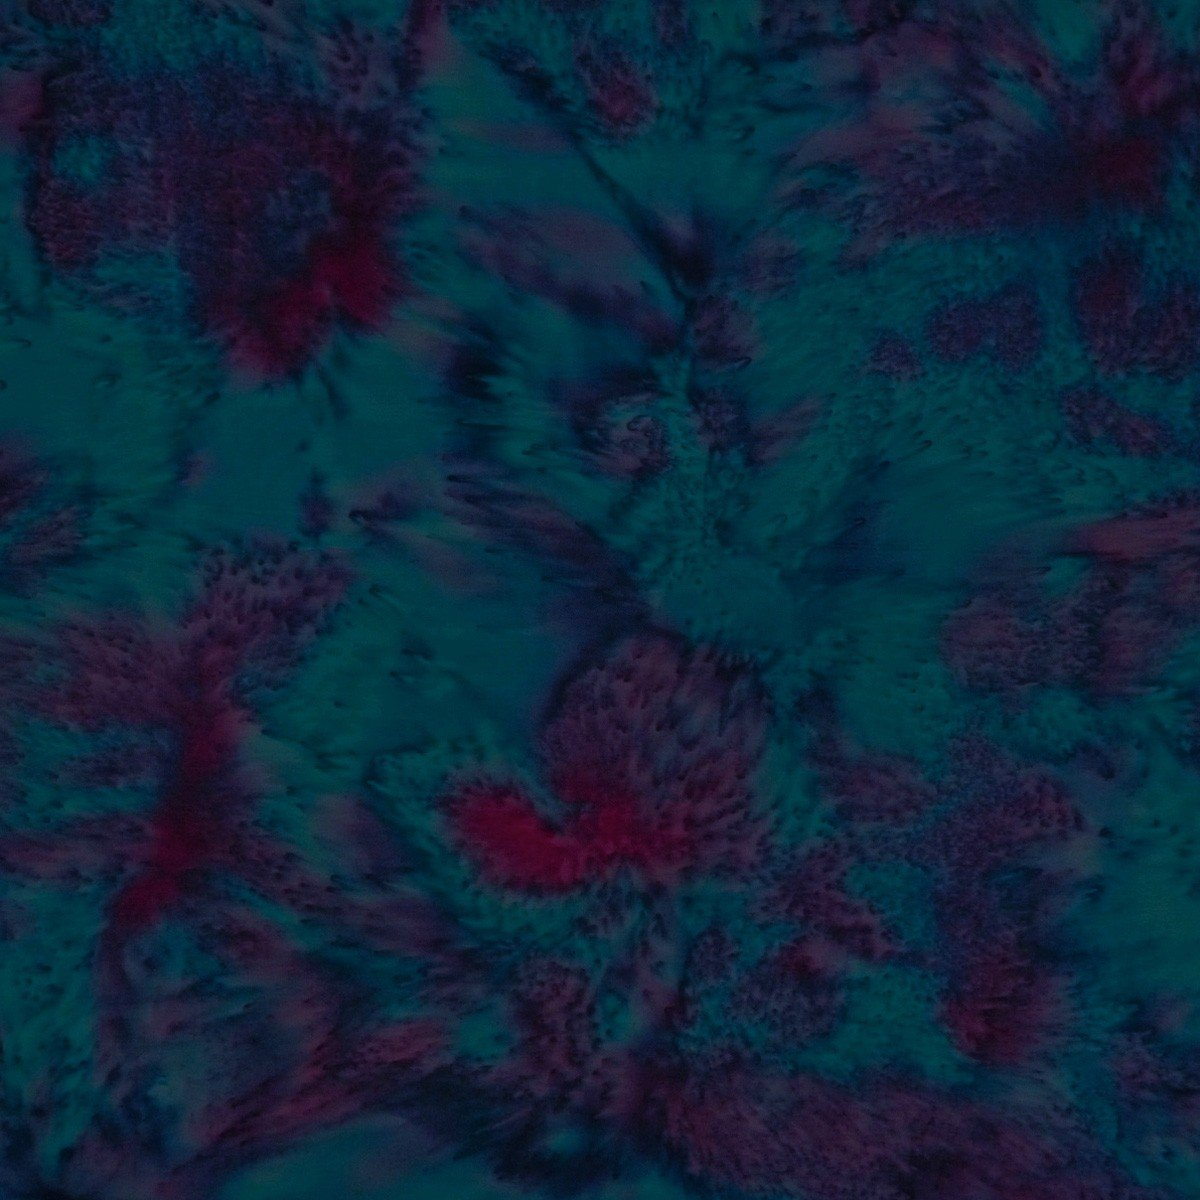 Batik by Mirah - Silhouette - Aqua Dance - purple/blue flowing together